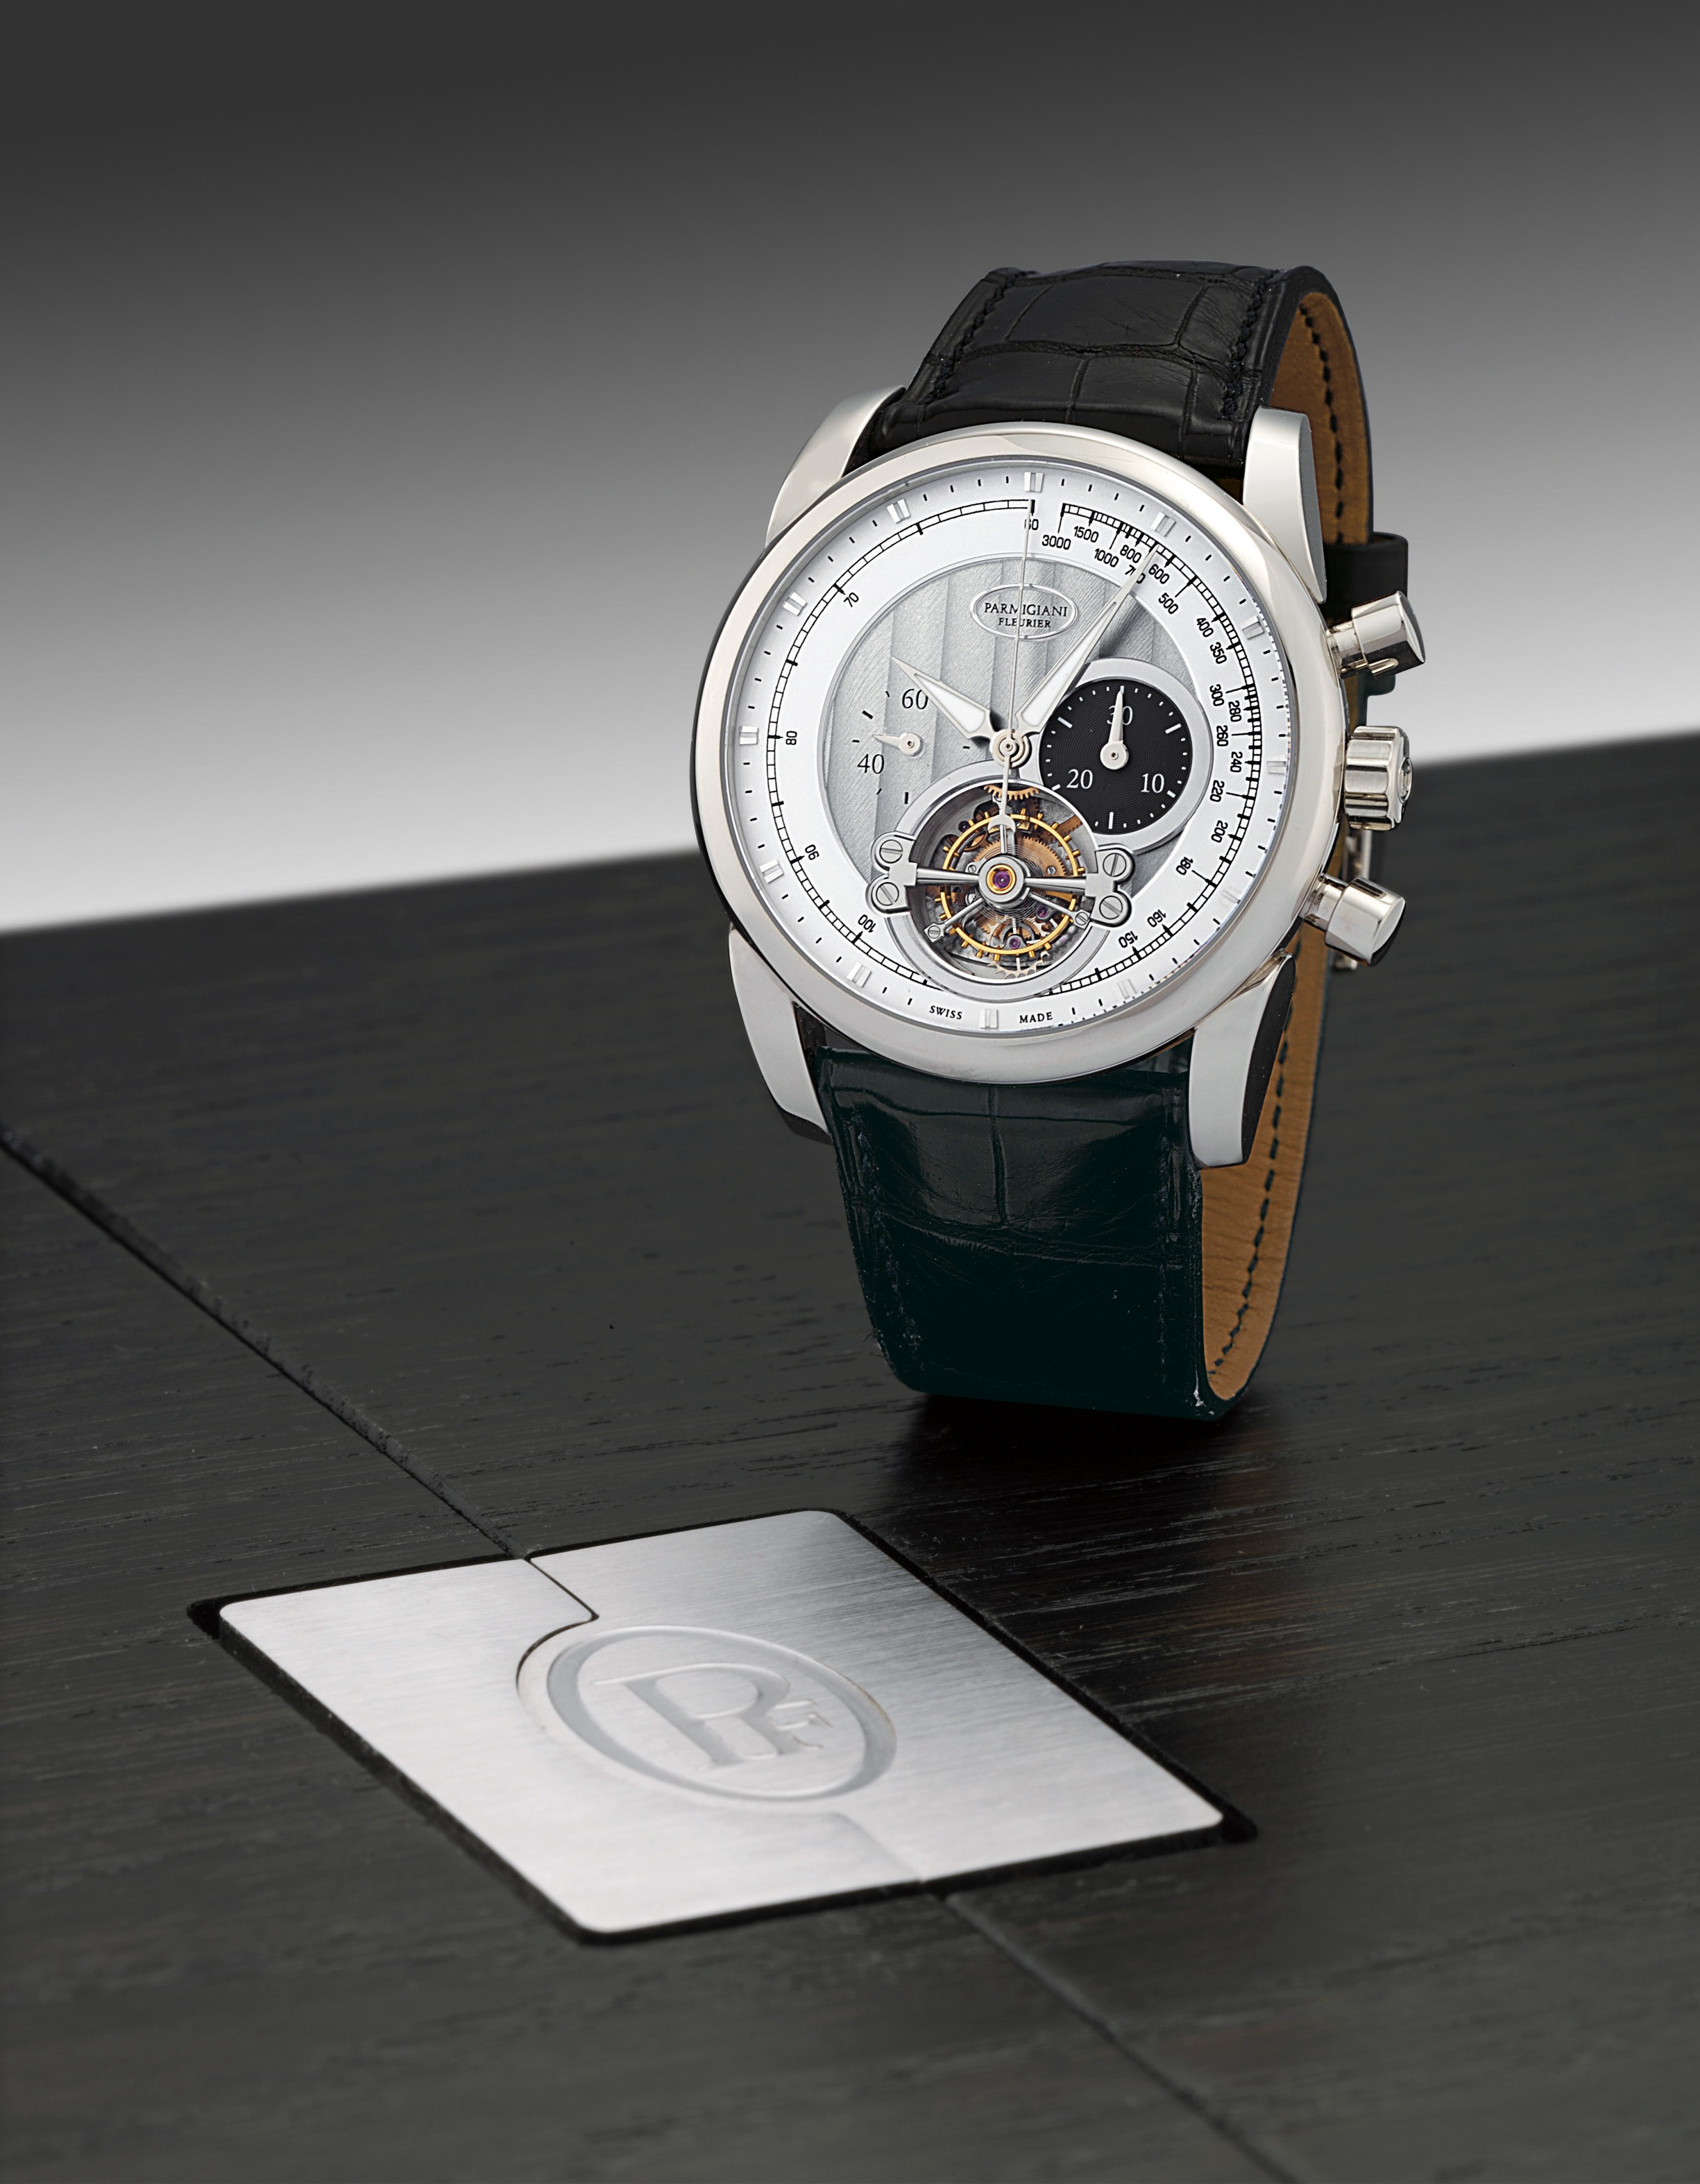 PARMIGIANI FLEURIER, TONDAGRAPH 43 TOURBILLON  WHITE GOLD MANUALLY-WOUND CHRONOGRAPH TOURBILLON WRISTWATCH, LIMITED EDITION OF 30